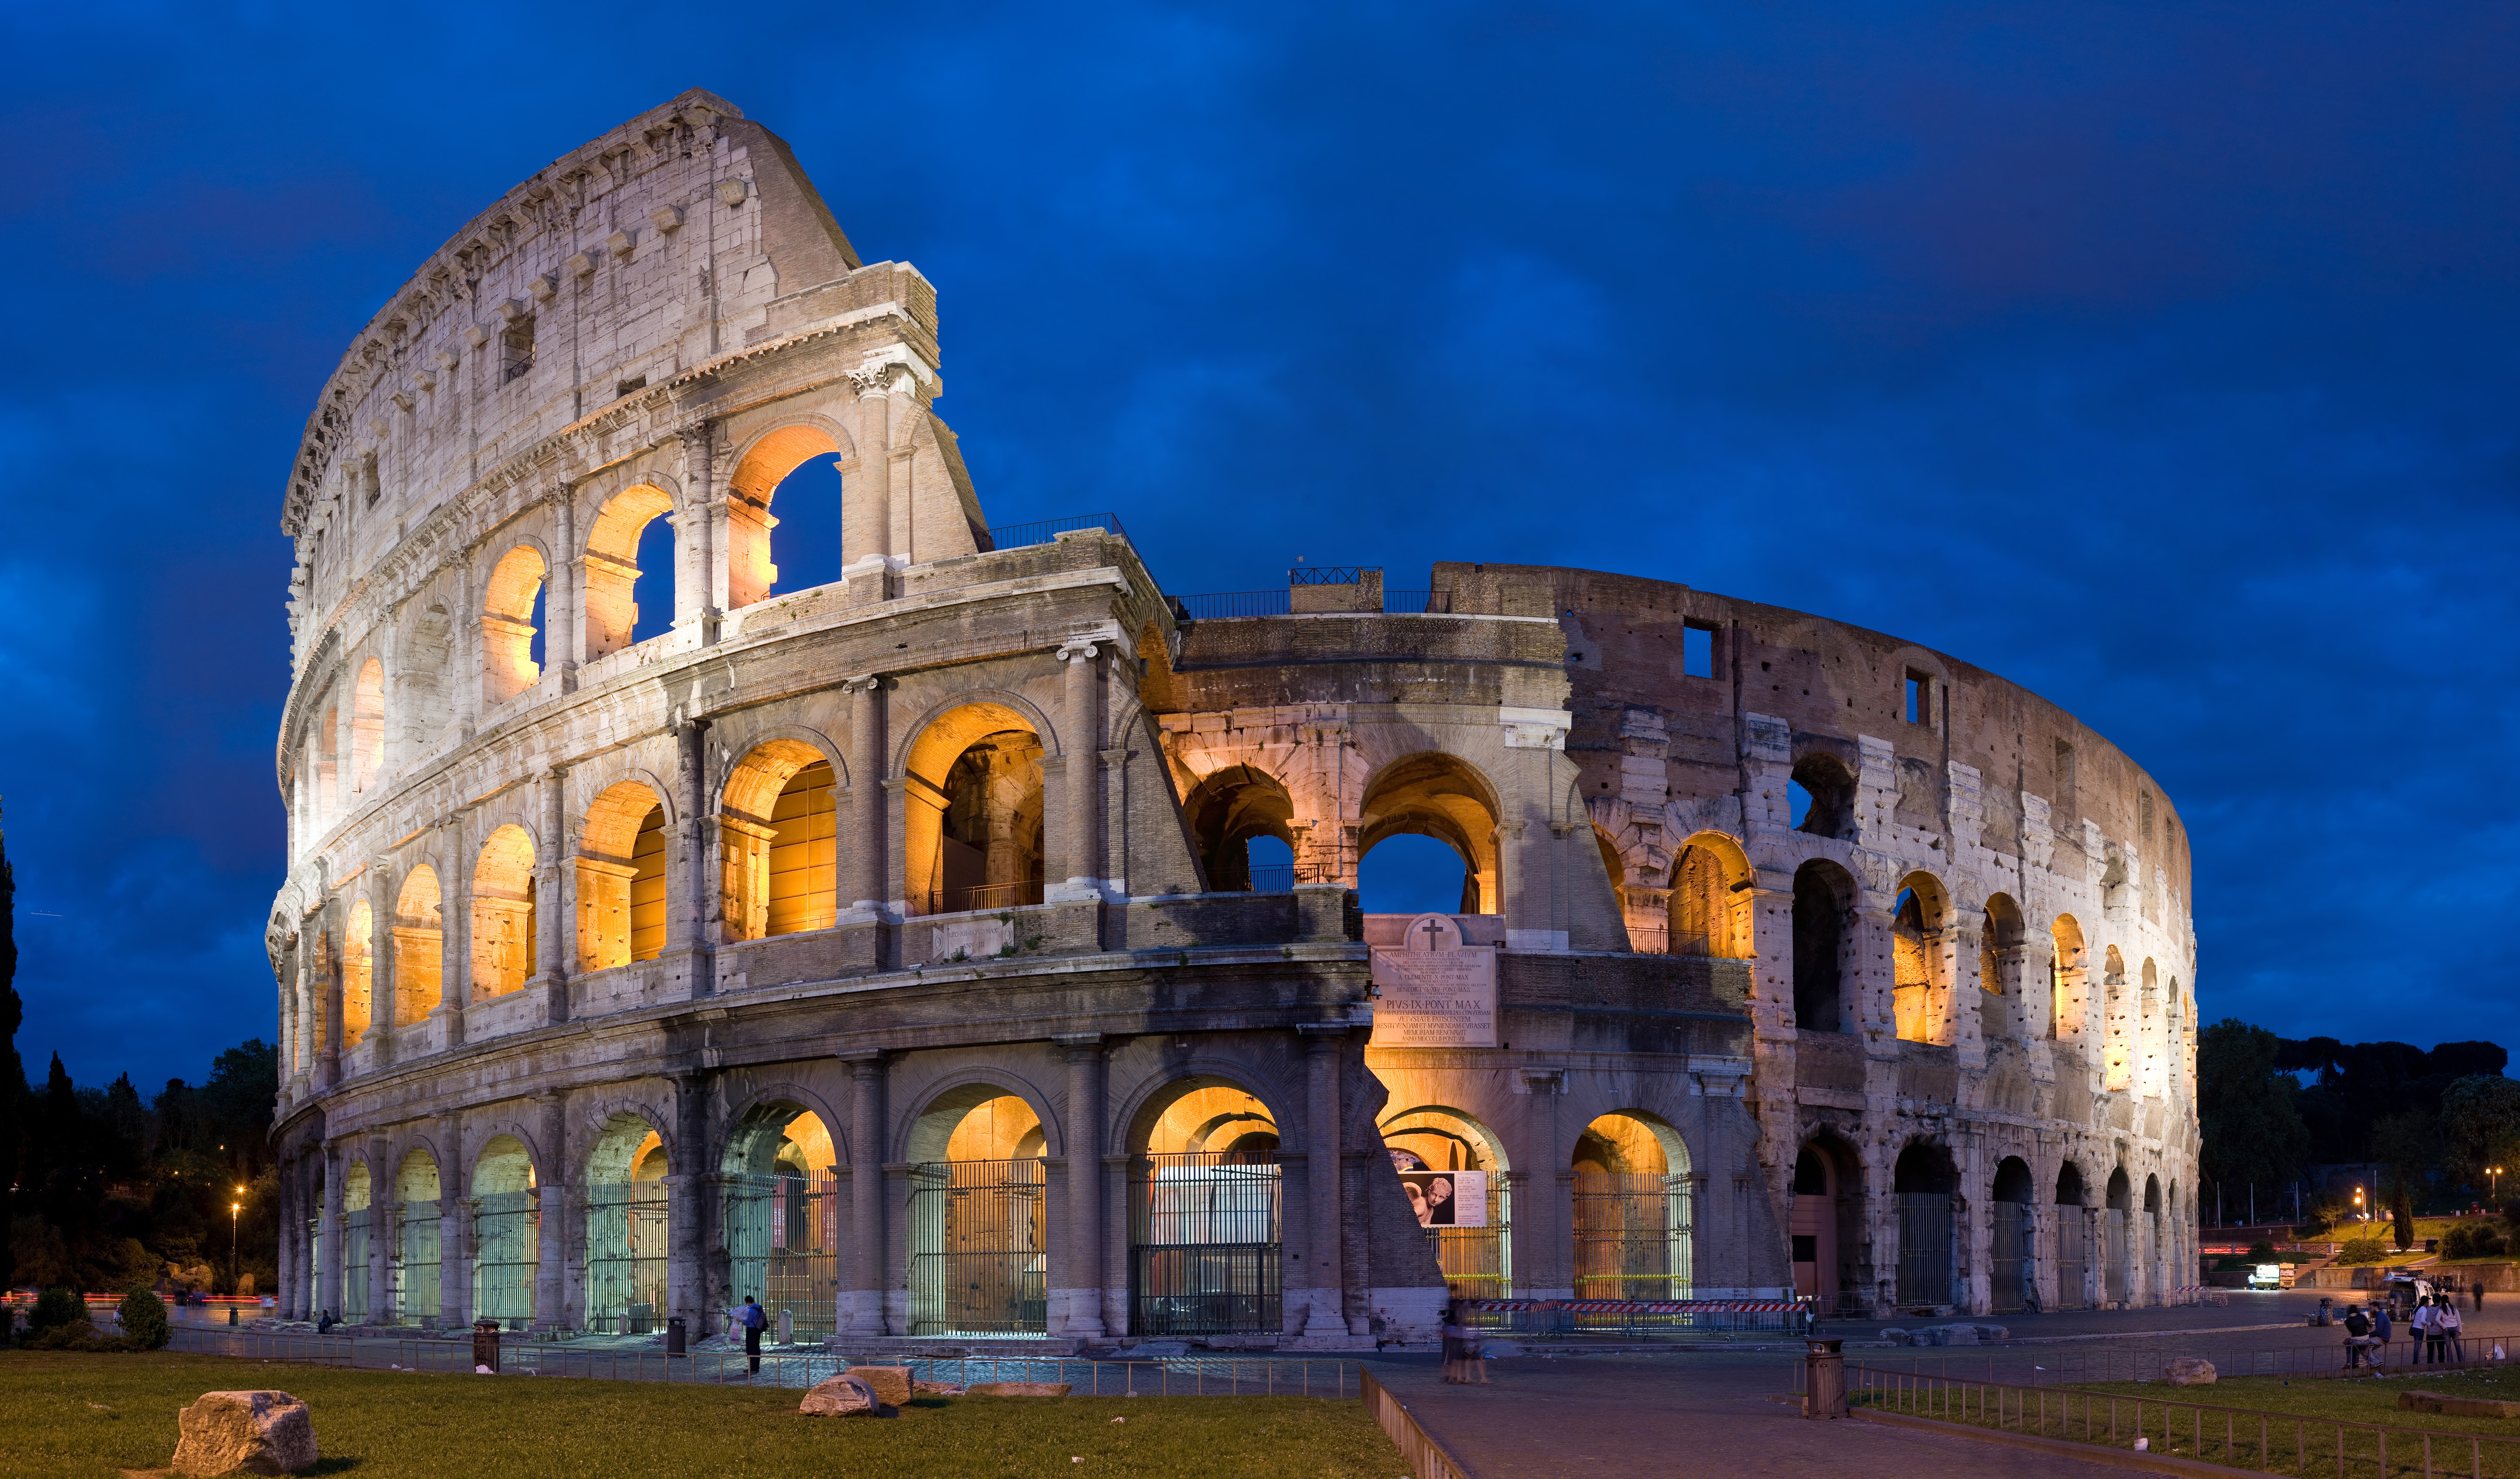 Colosseum_in_Rome_Italy.jpg